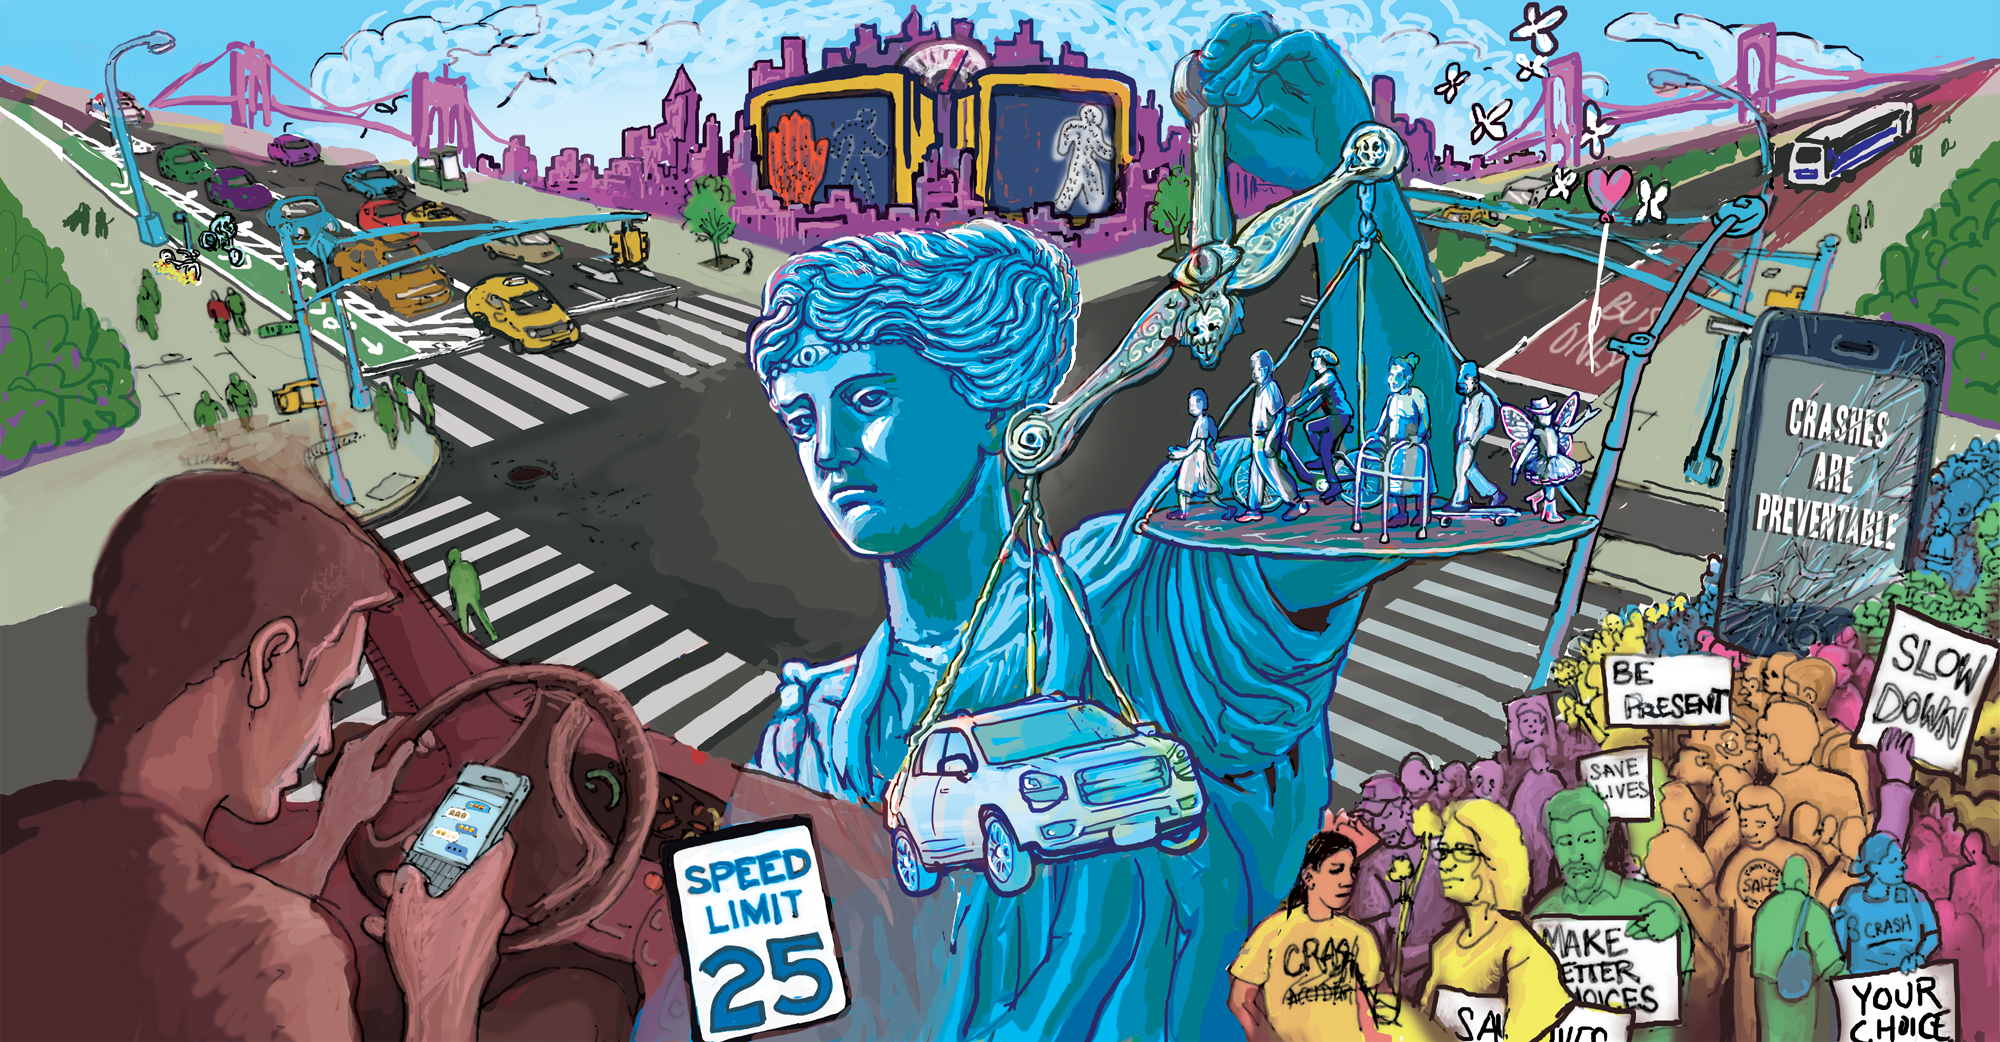 Vision Zero mural. Image courtesy Groundswell